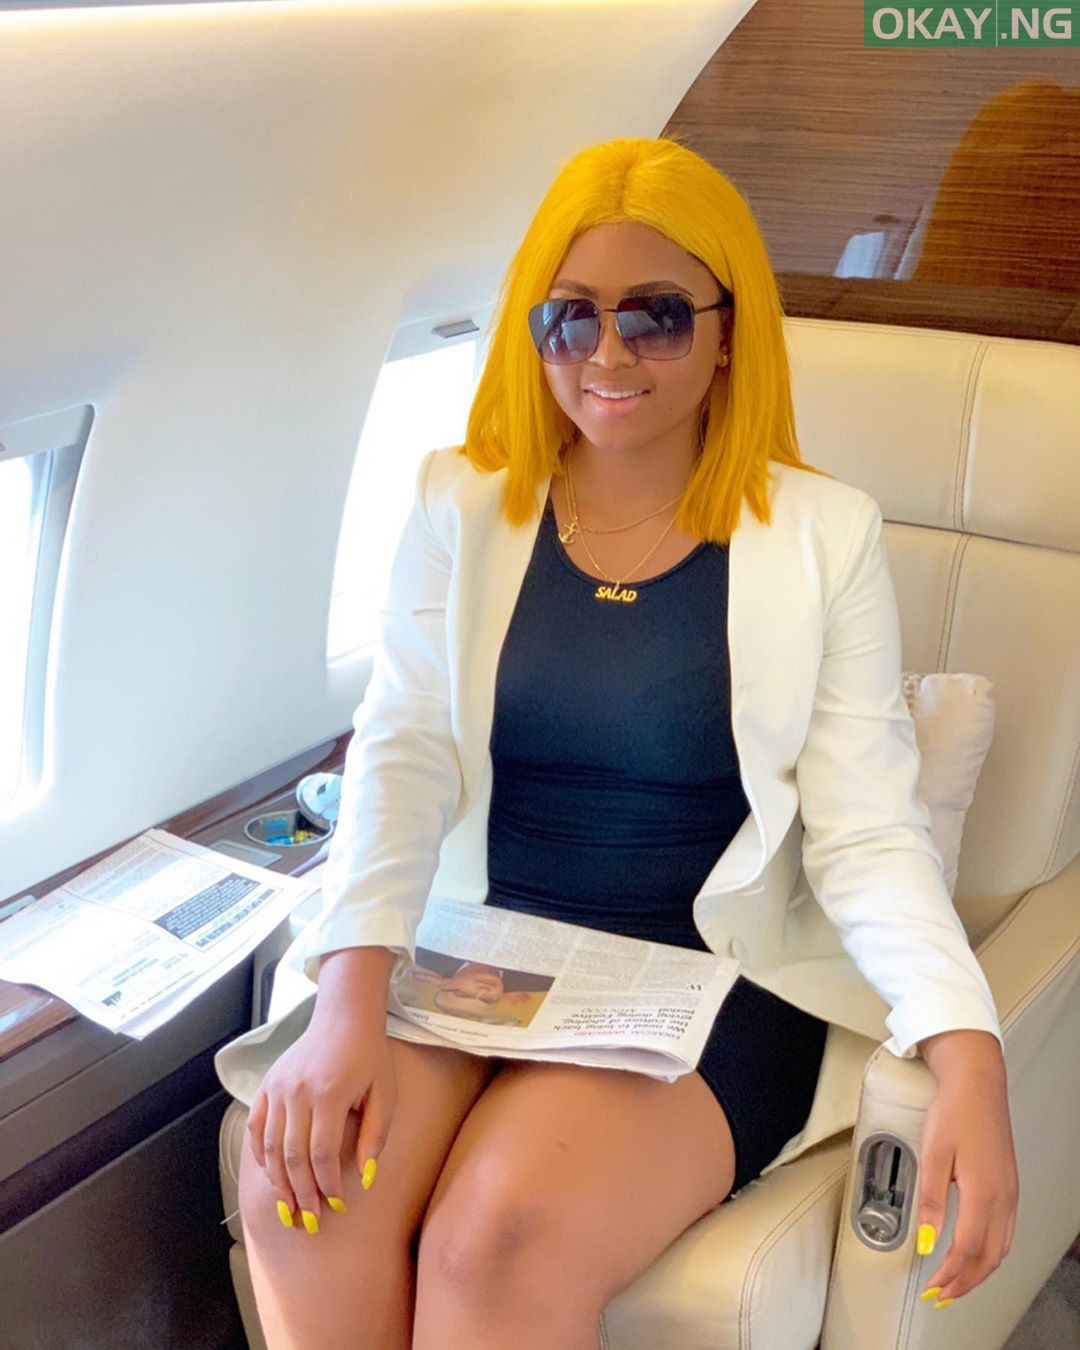 2 - Simple Girl! Regina Daniels shares new stunning pictures